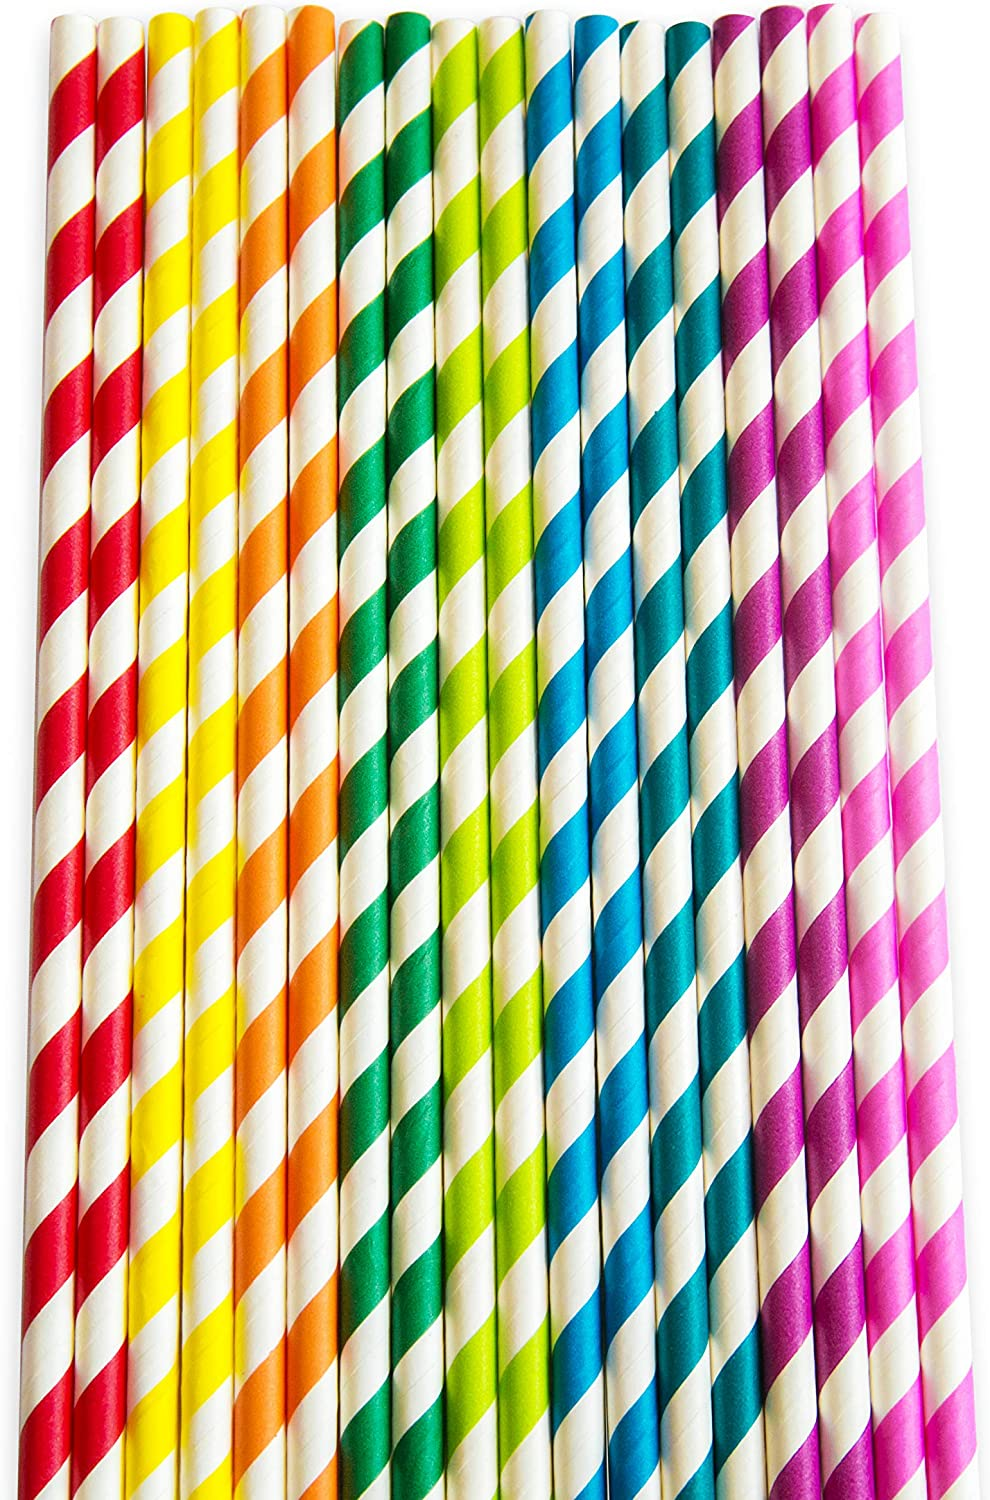 Weddings /& All Occasions. Great for Cocktails Suitable for Parties Cold Drinks /& Juices Paper Straws by Sidela Mills-150 Multicoloured Pack Biodegradable Recyclable Drinking Straws